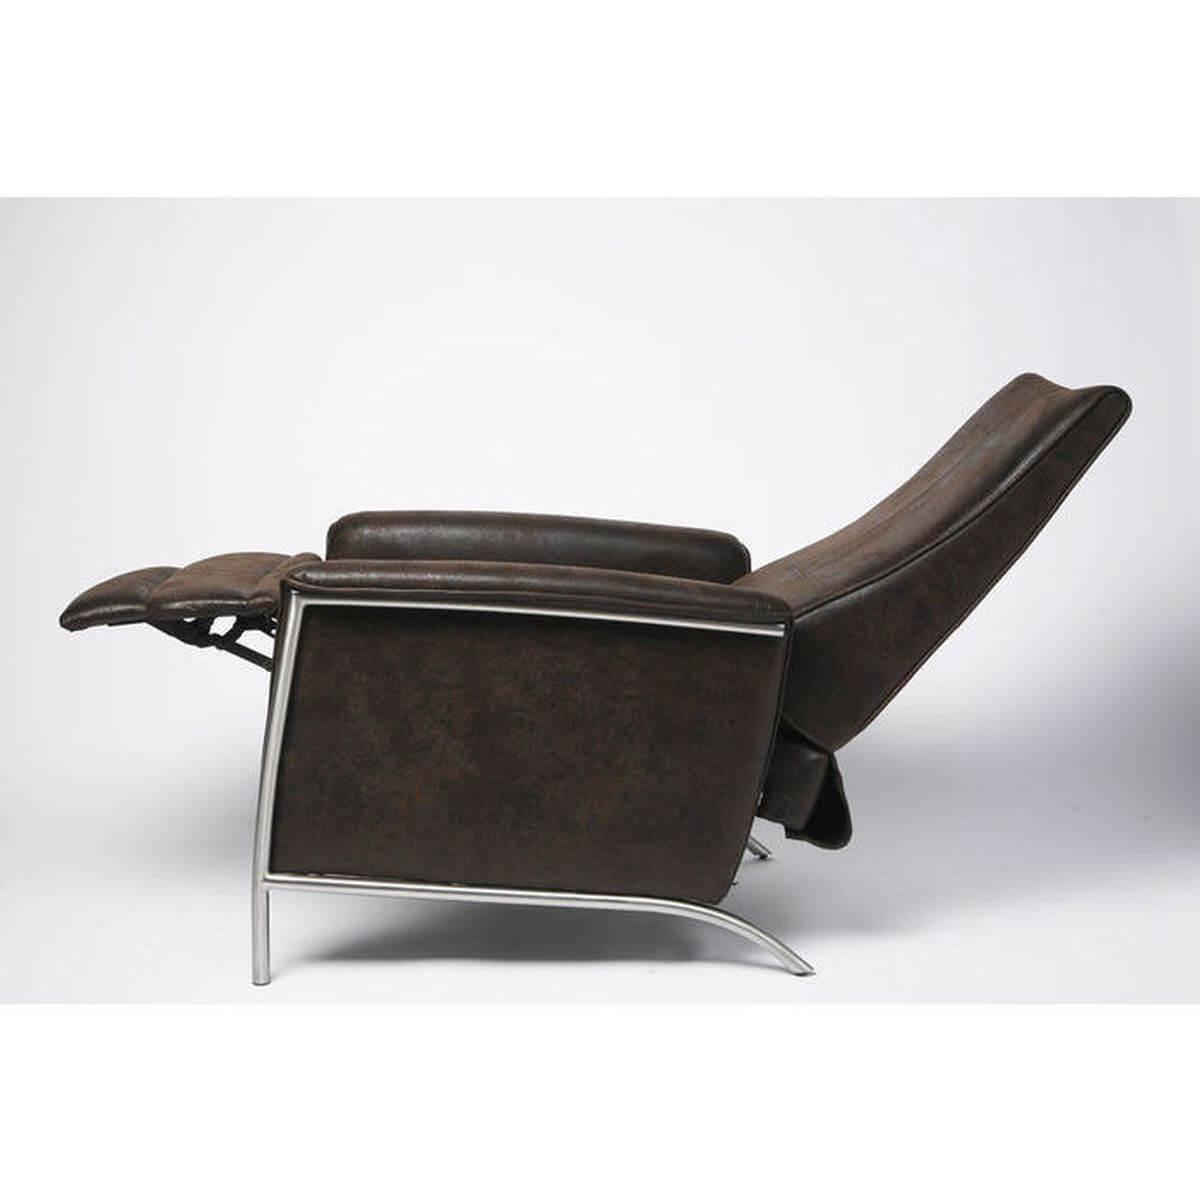 Fauteuil-relax LAZY Kare Design